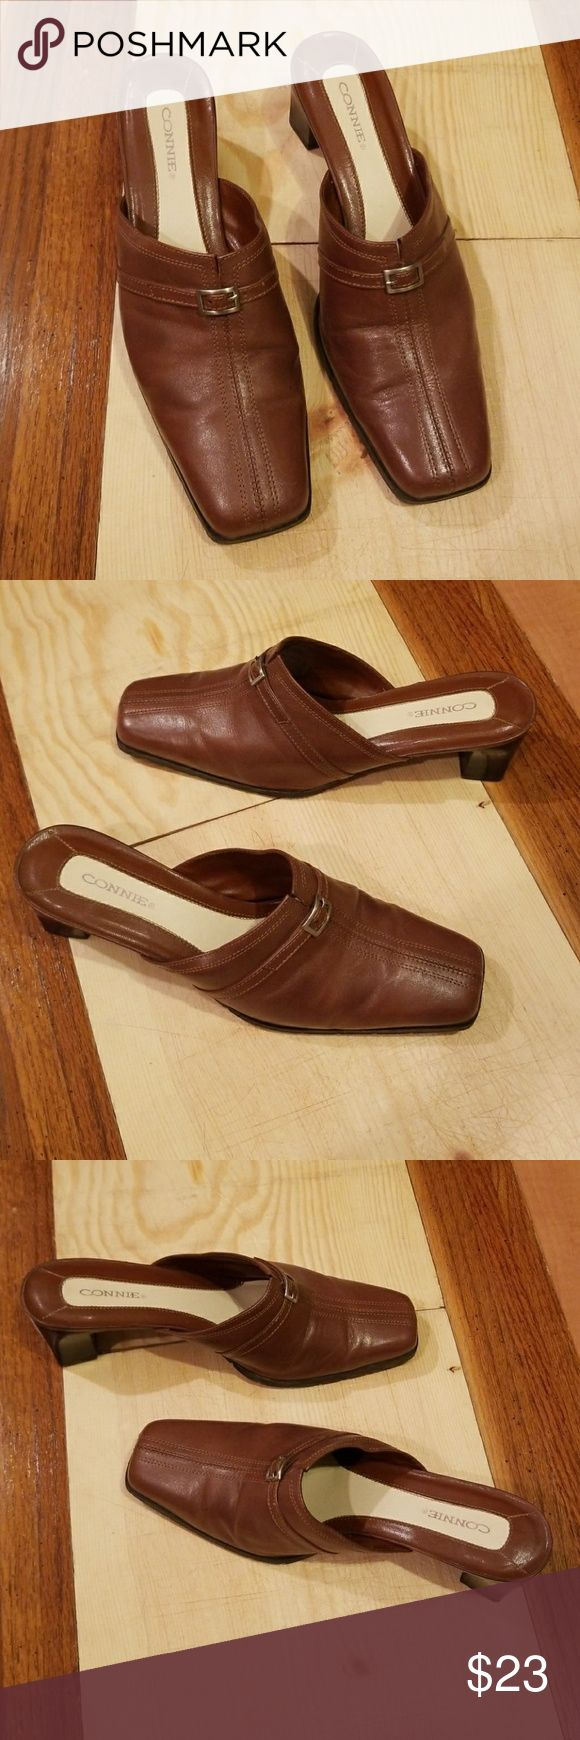 Connie slip on Mule Clogs Slides Really nice condition lightly worn soles have light wear. Connie Shoes Mules & Clogs